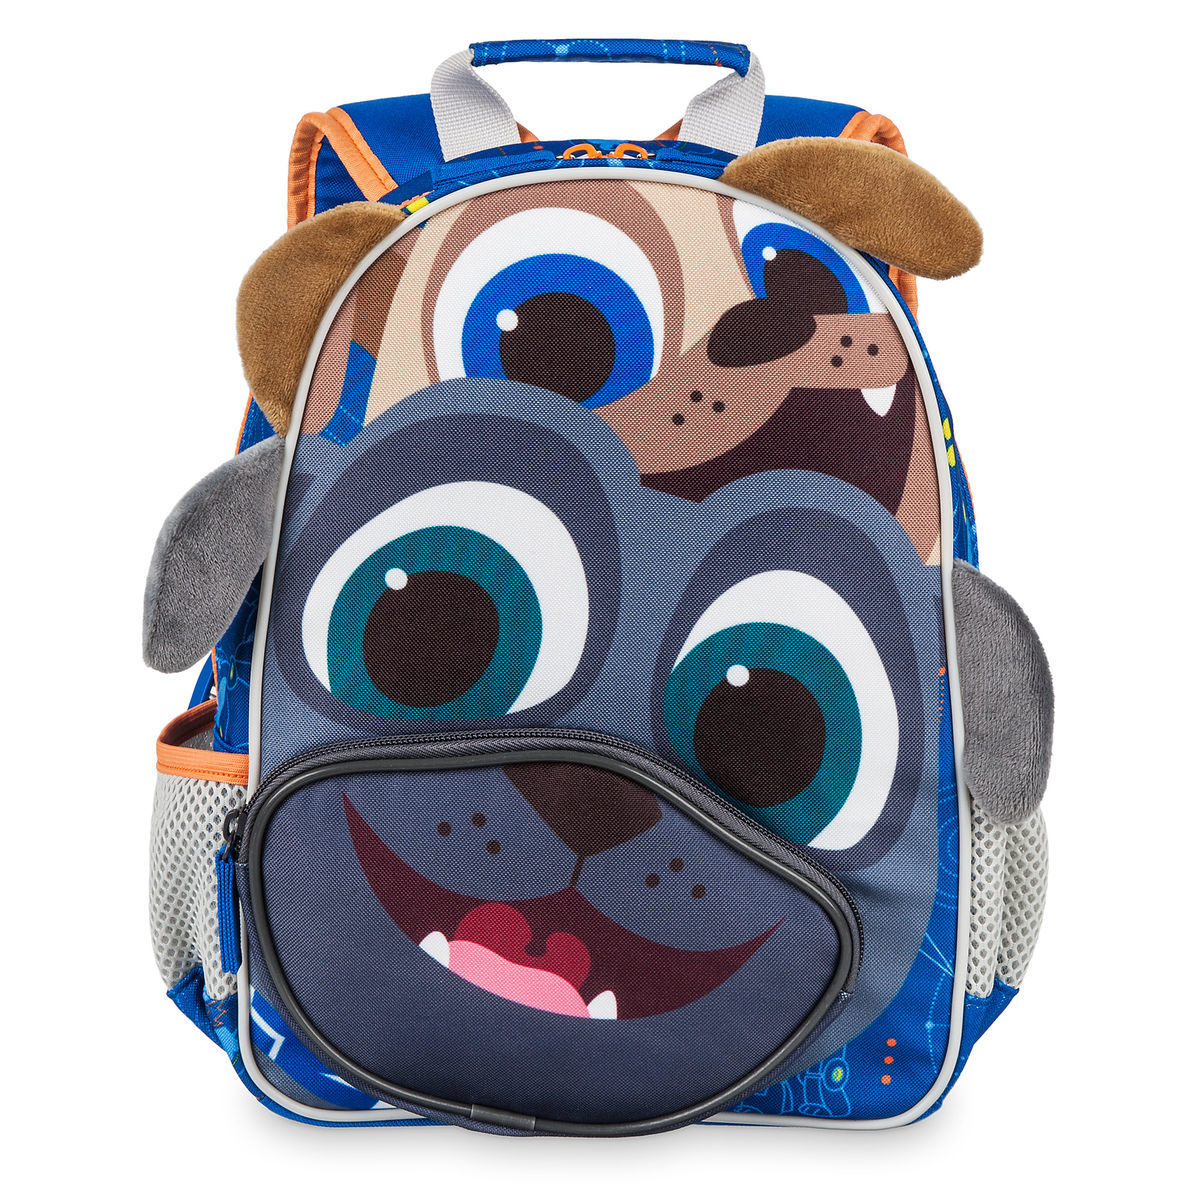 Product Image of Puppy Dog Pals Backpack   1 66a7c508b69a1